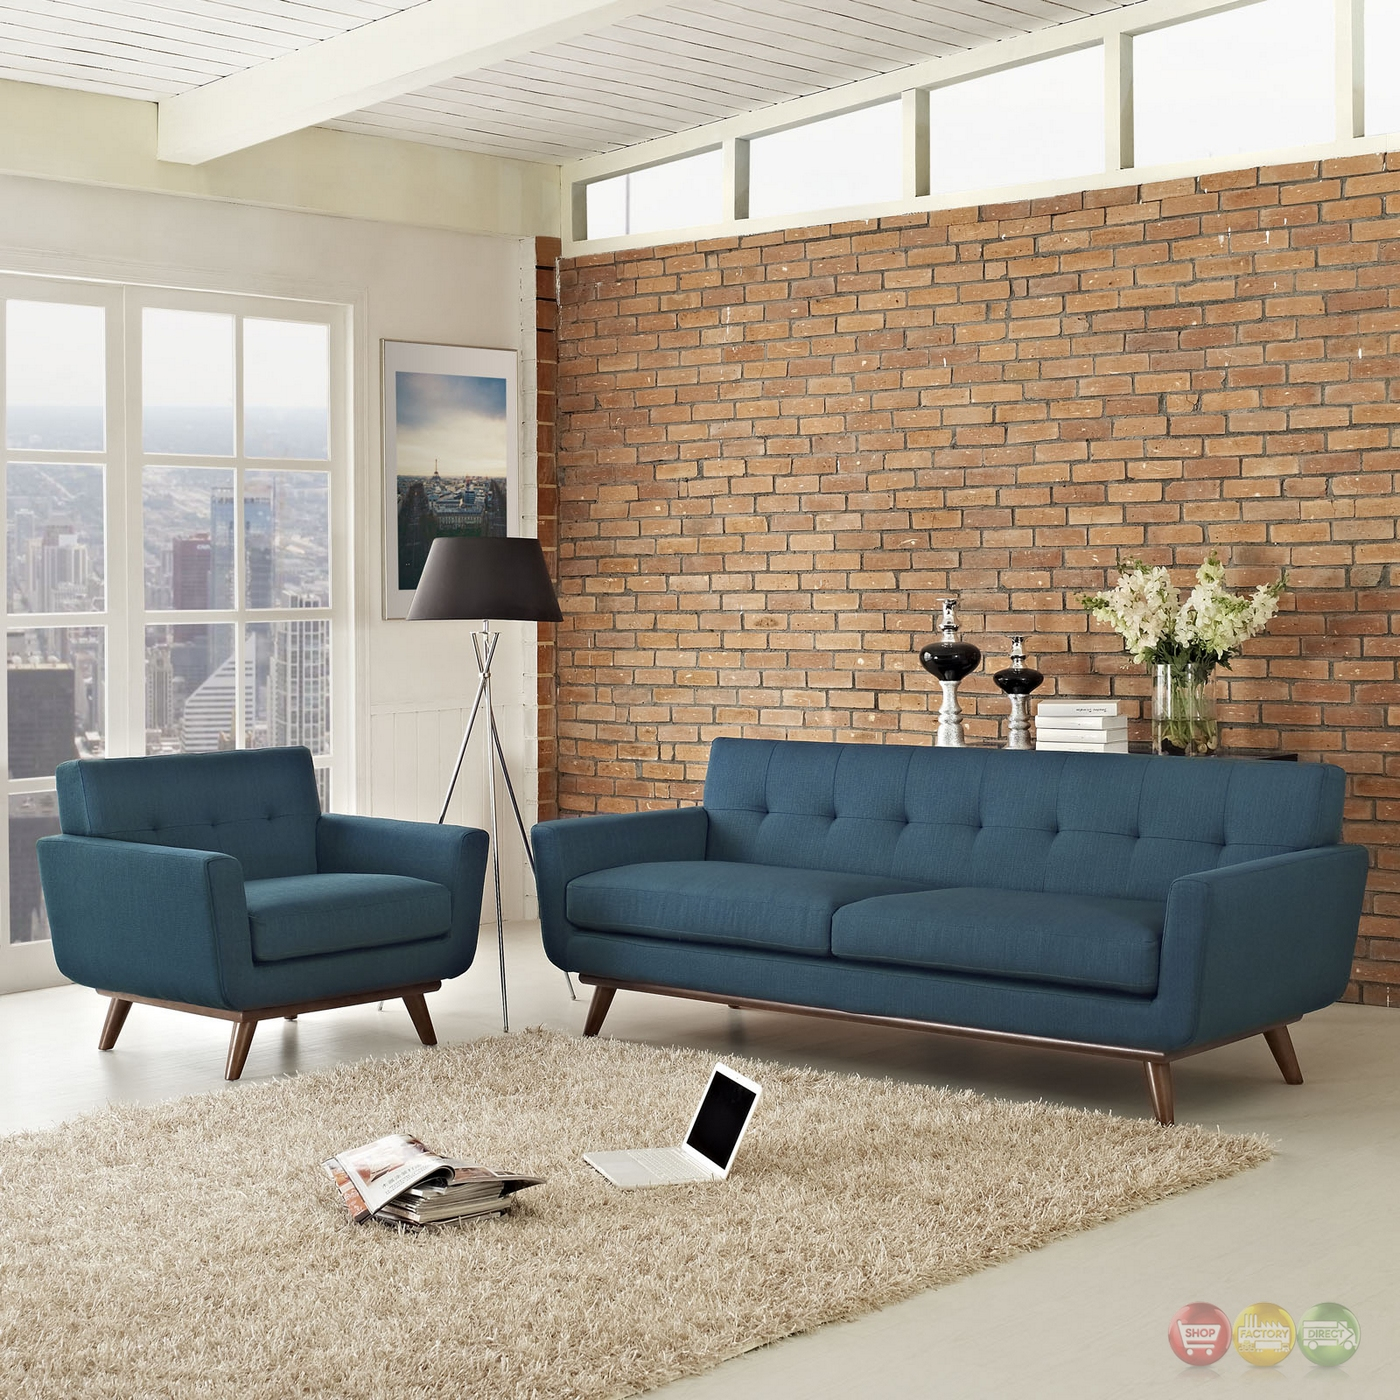 Engage Modern 2pc Upholstered Button-tufted Sofa ...